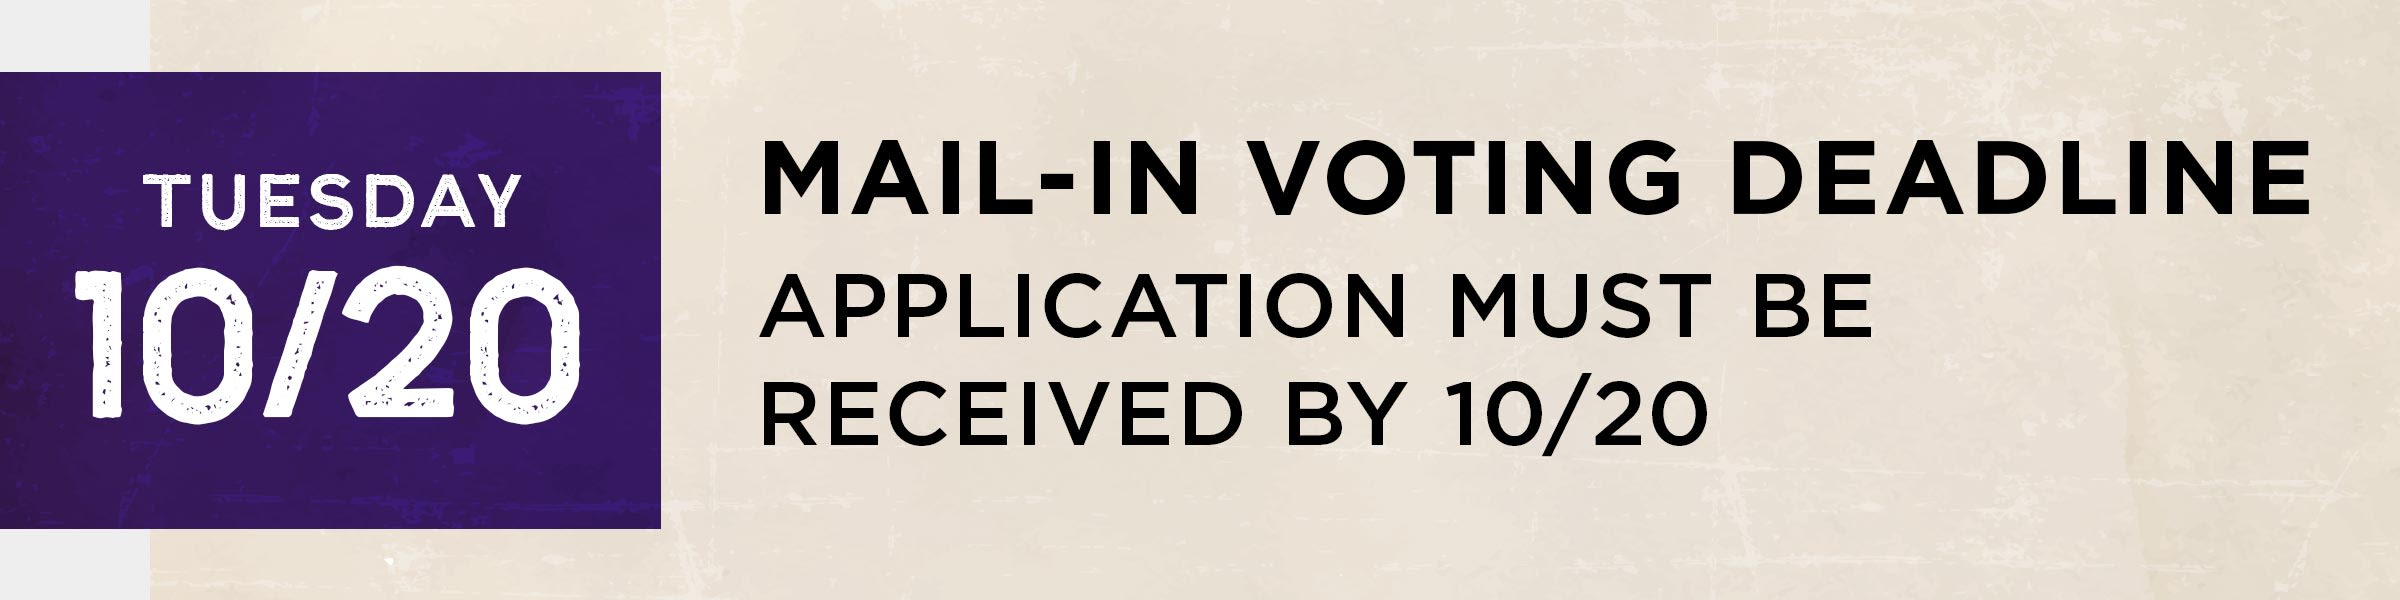 Tuesday, October 20  Mail-in voting deadline. Application must be received by 10/20.